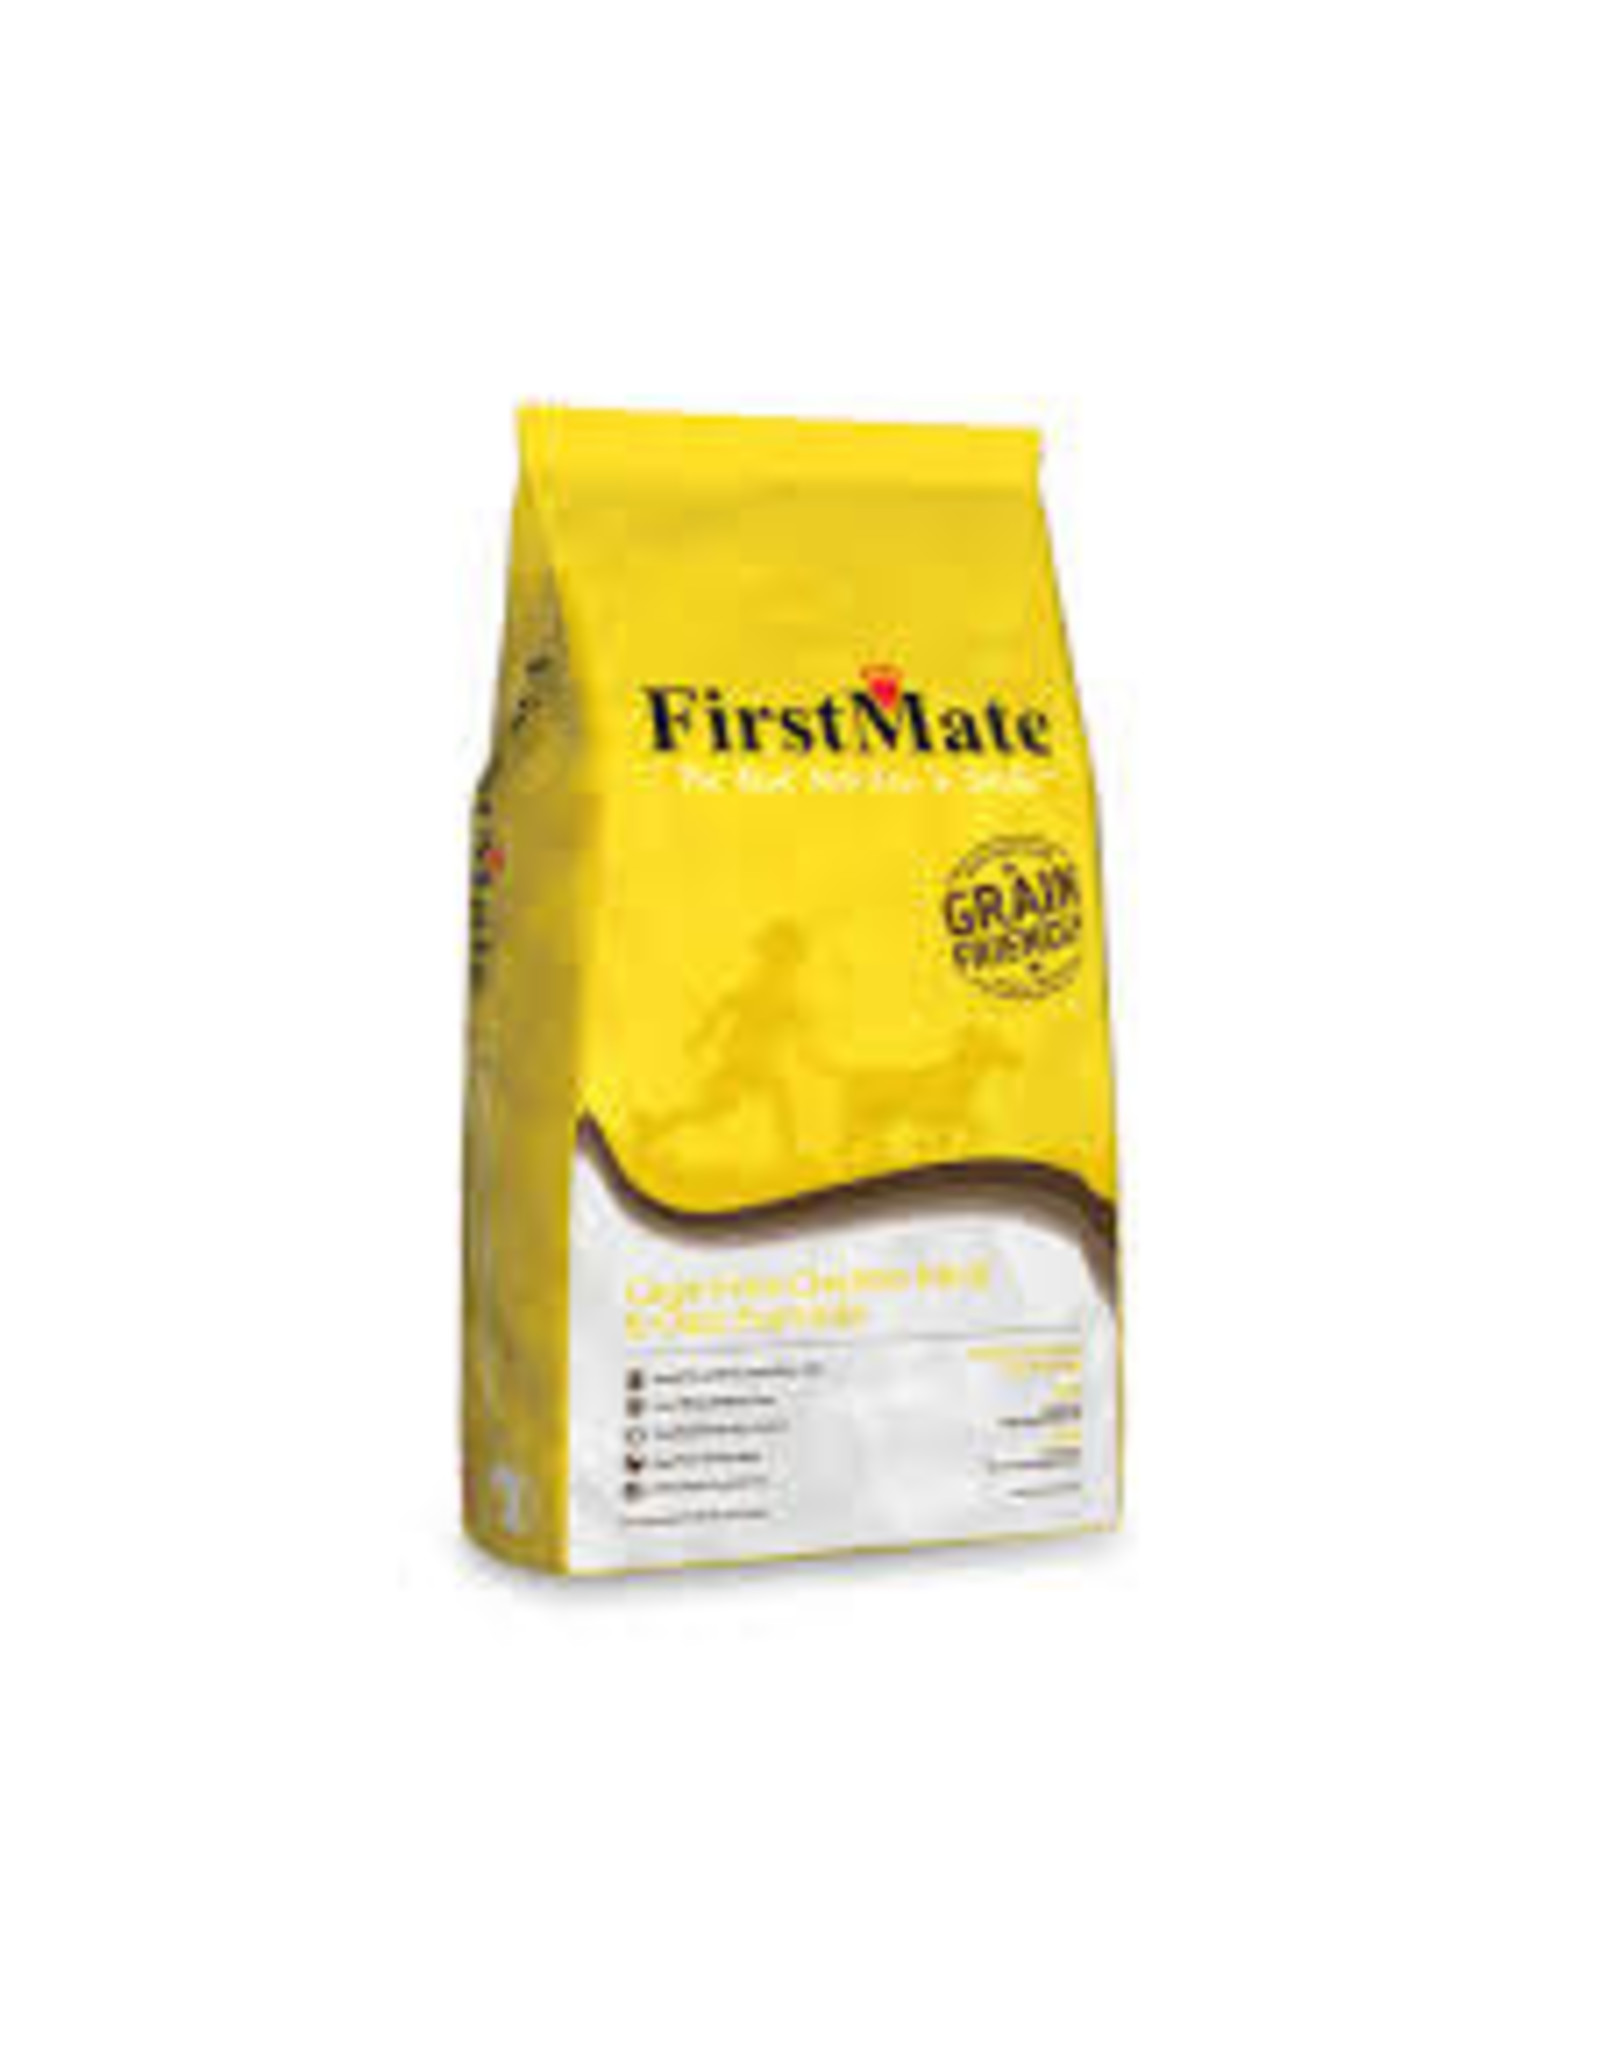 FirstMate FirstMate - Grain friendly Cage Free Chicken & Oats Dog